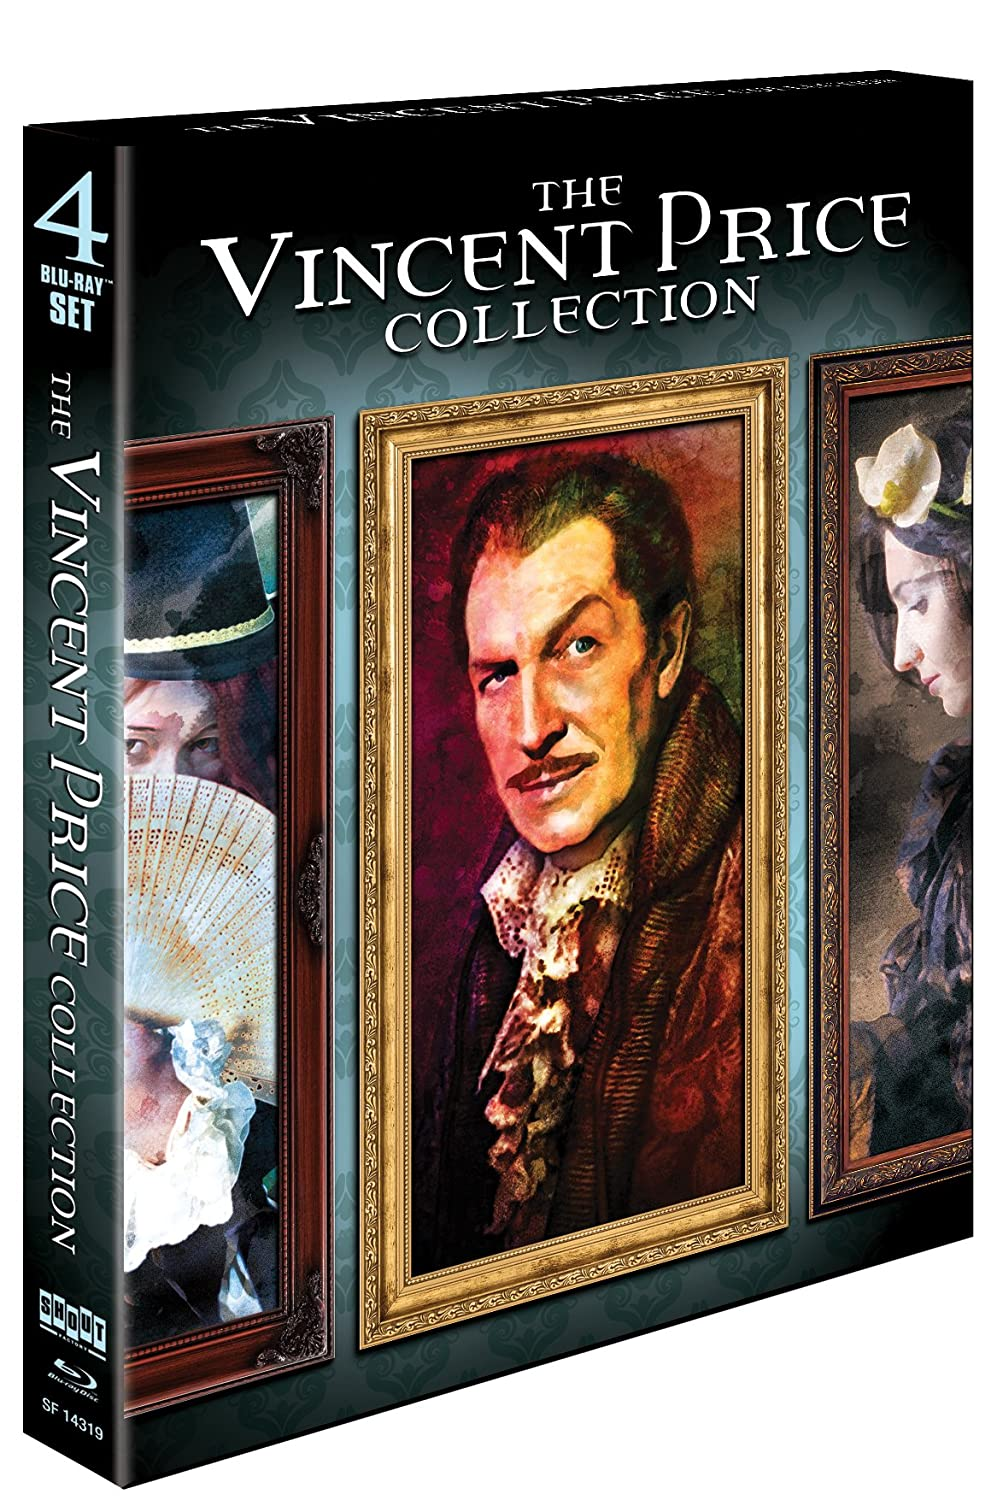 42nd 43rd picks peeks the uninvited the haunting vincent the vincent price collection blu ray the pit the pendulum the masque of the red death the haunted palace the fall of the house of usher